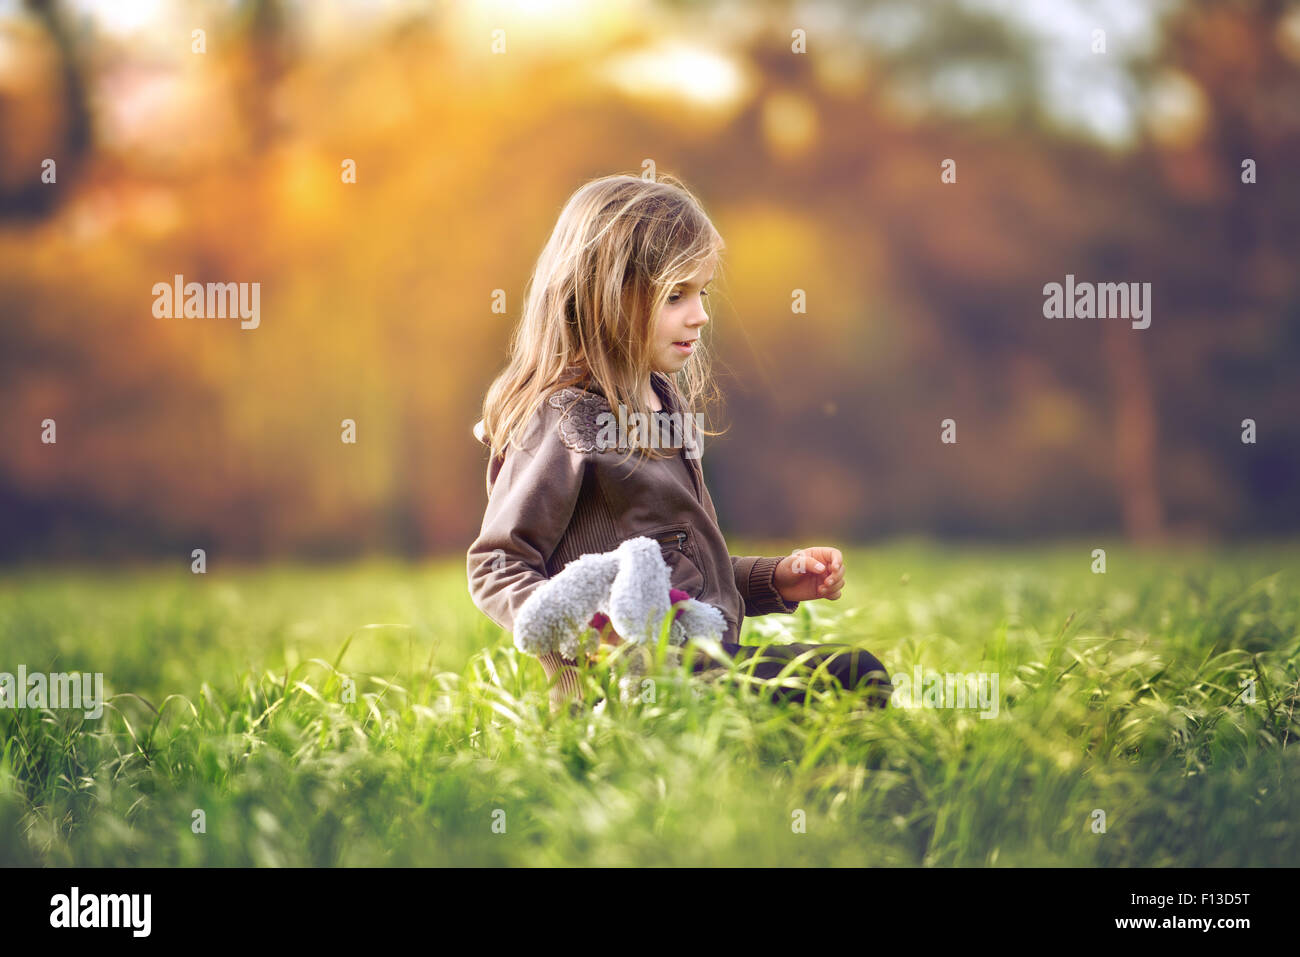 Girl sitting in a field in soft toy Photo Stock